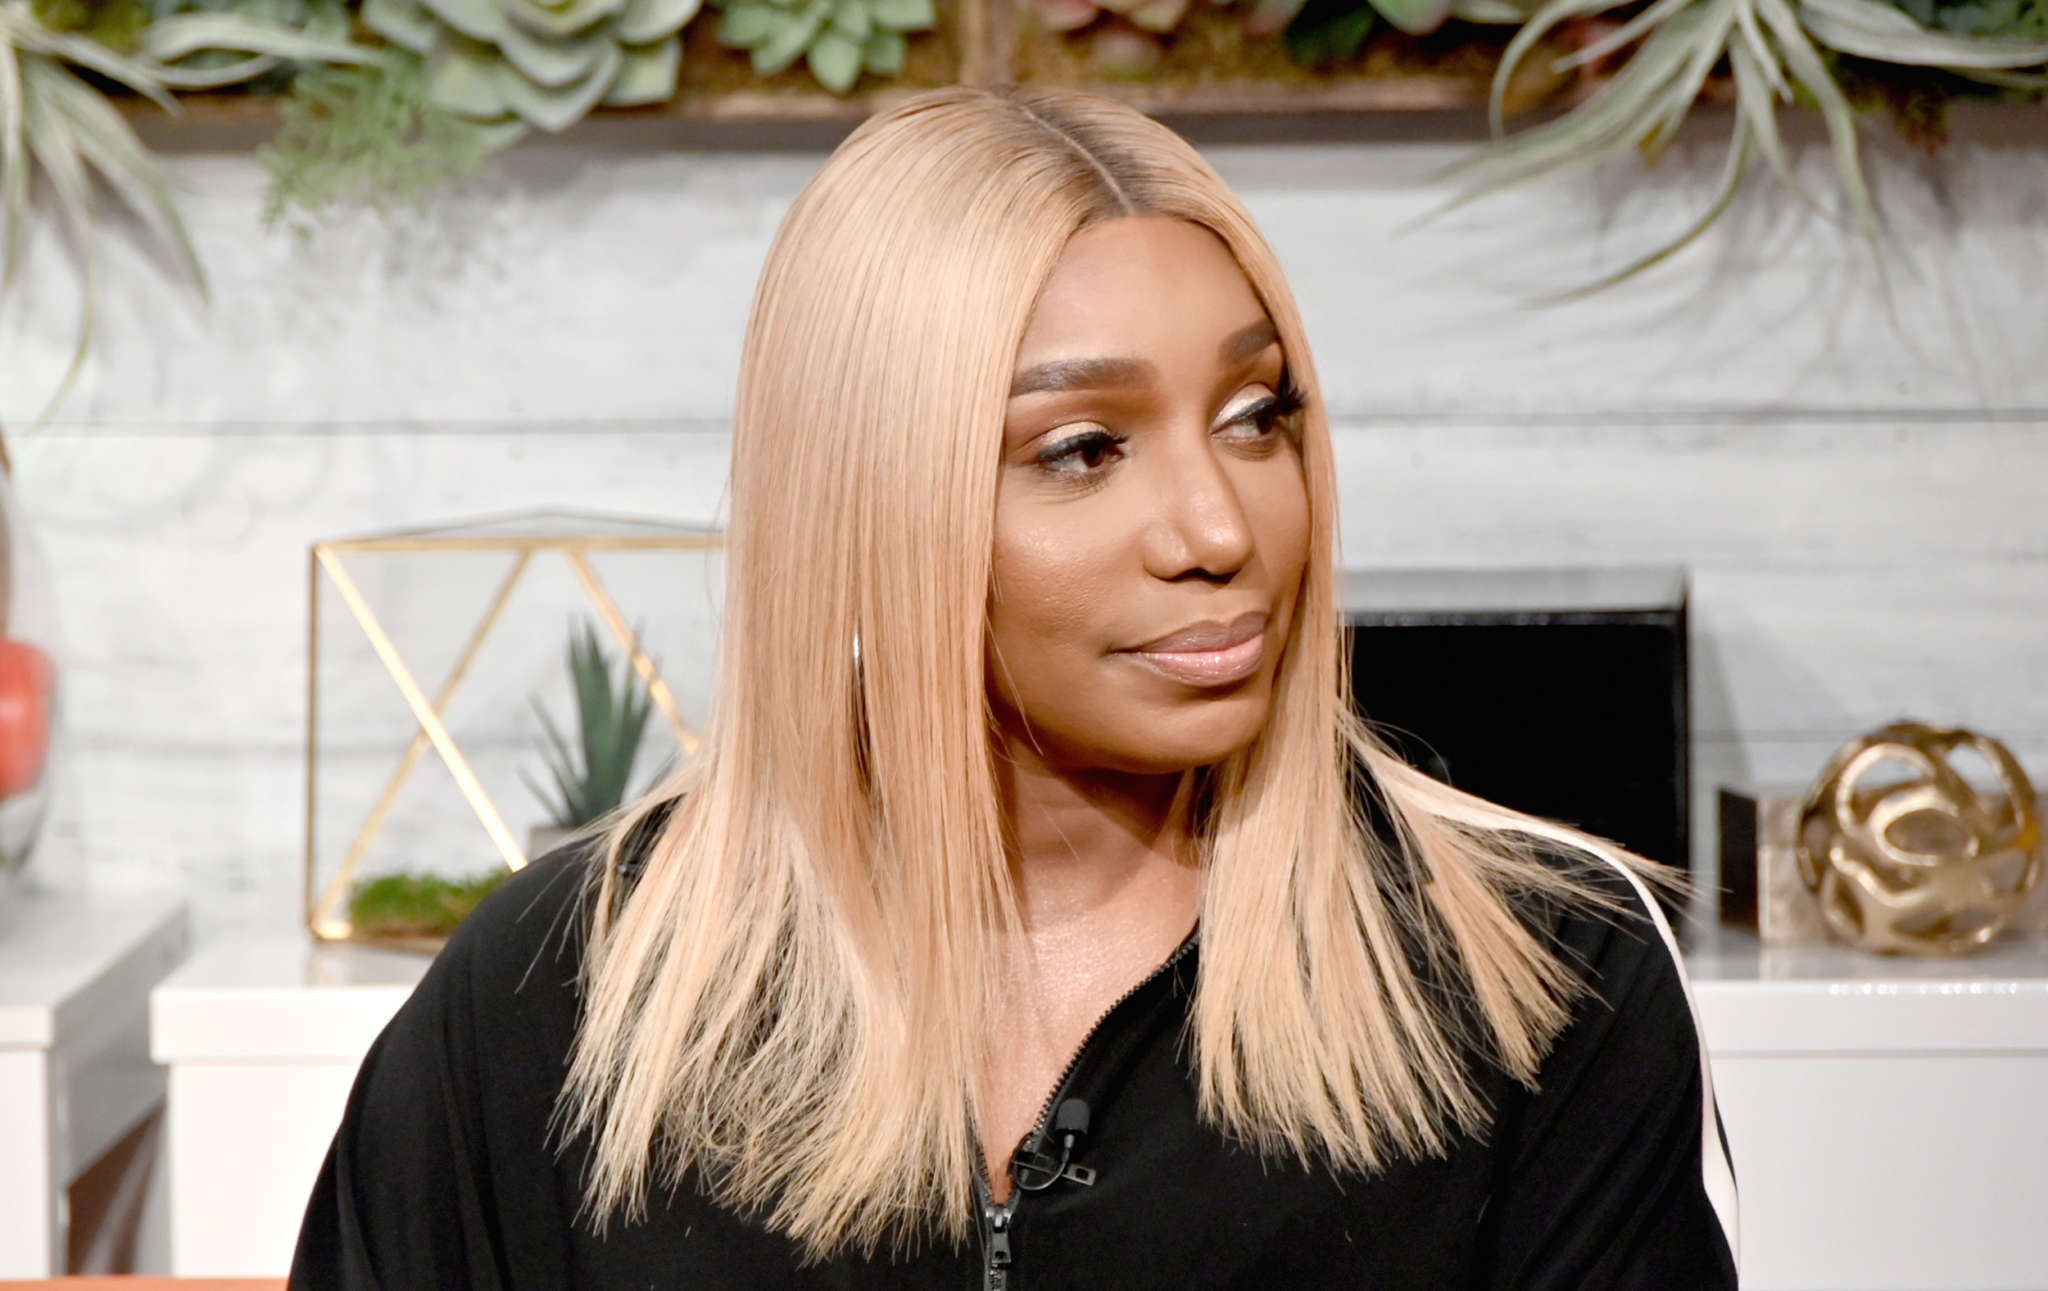 nene-leakes-latest-photos-have-fans-bringing-up-cosmetic-surgery-again